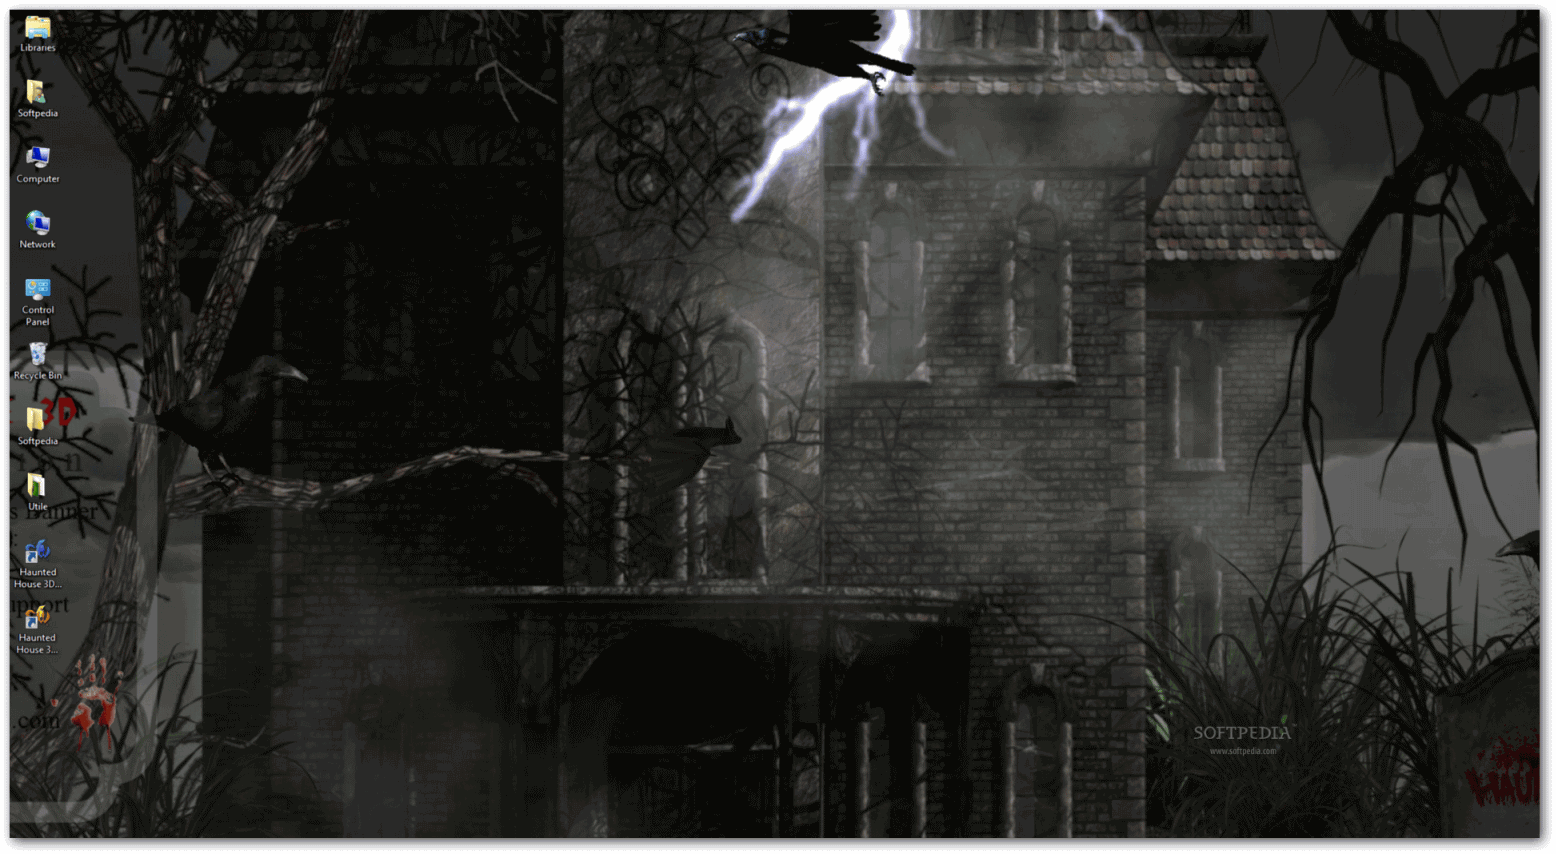 House 3D The Evil Lies Within animated wallpaper will actually look 1556x854